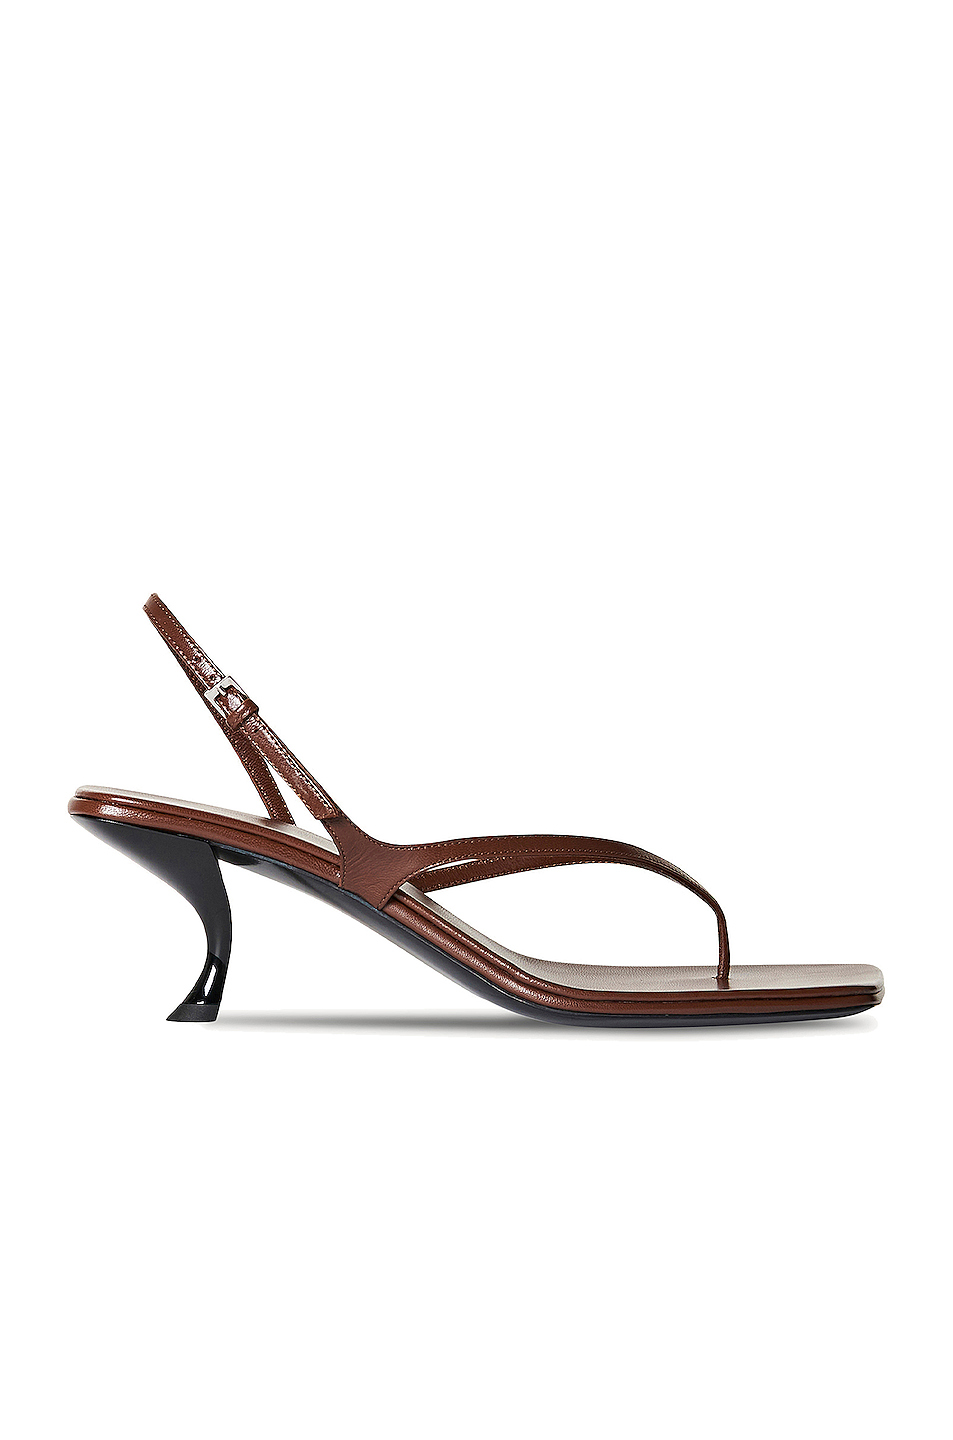 Constance Leather Sandals by The Row, available on fwrd.com for $850 Kendall Jenner Shoes Exact Product